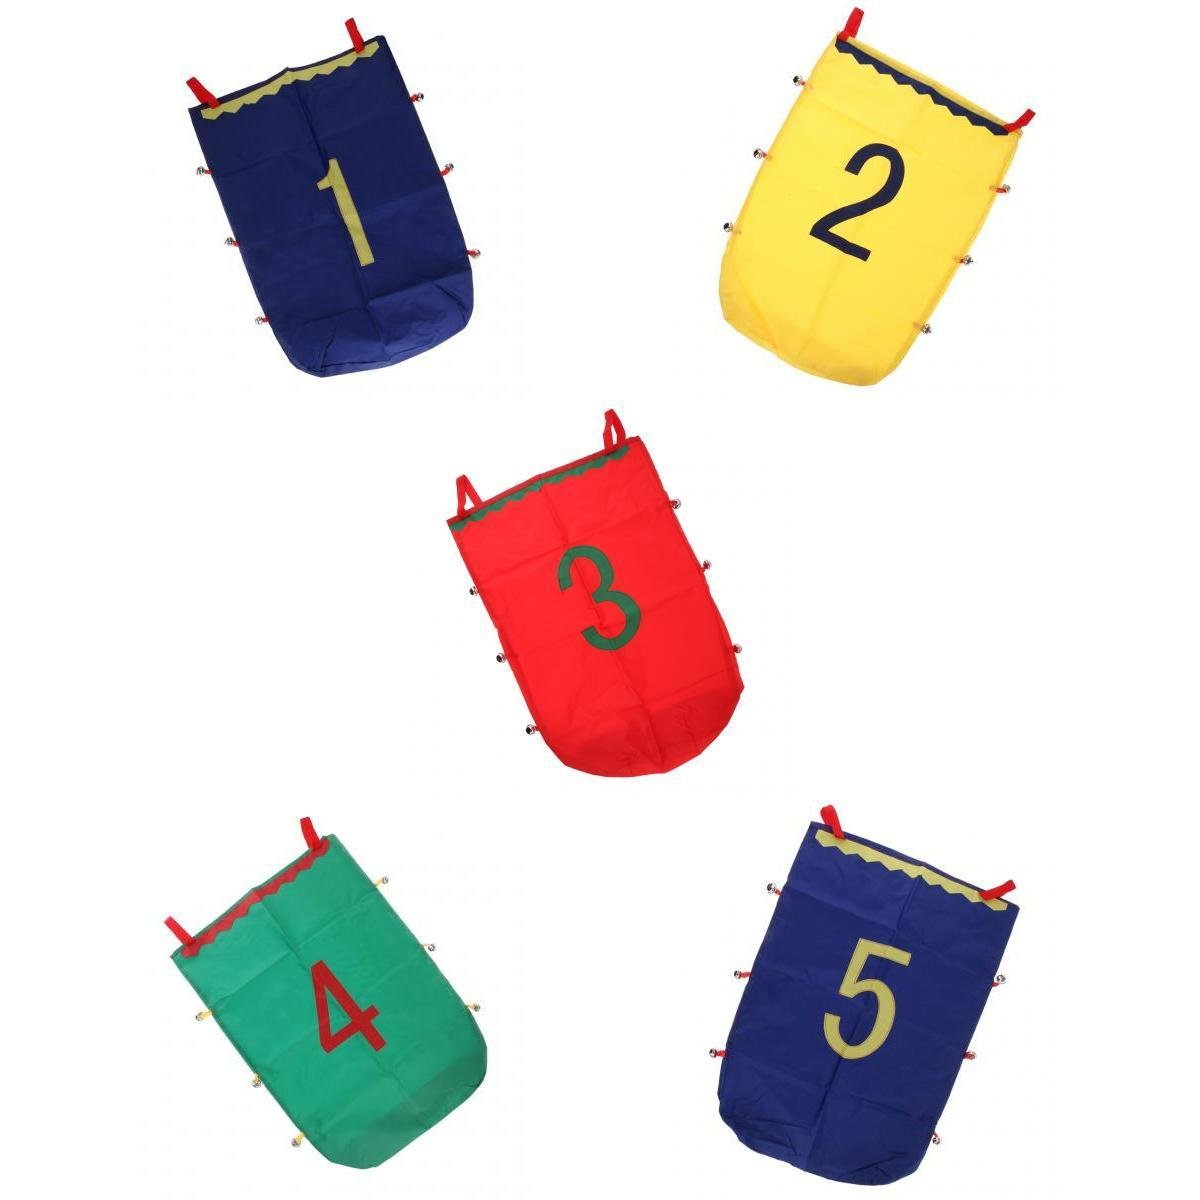 MagiDeal Outdoor Fun Balance Games 5pcs Jumping Sack Toy Racing Bag Kids Montessori Sports Toy Playground Activity Accessories Number 1-5